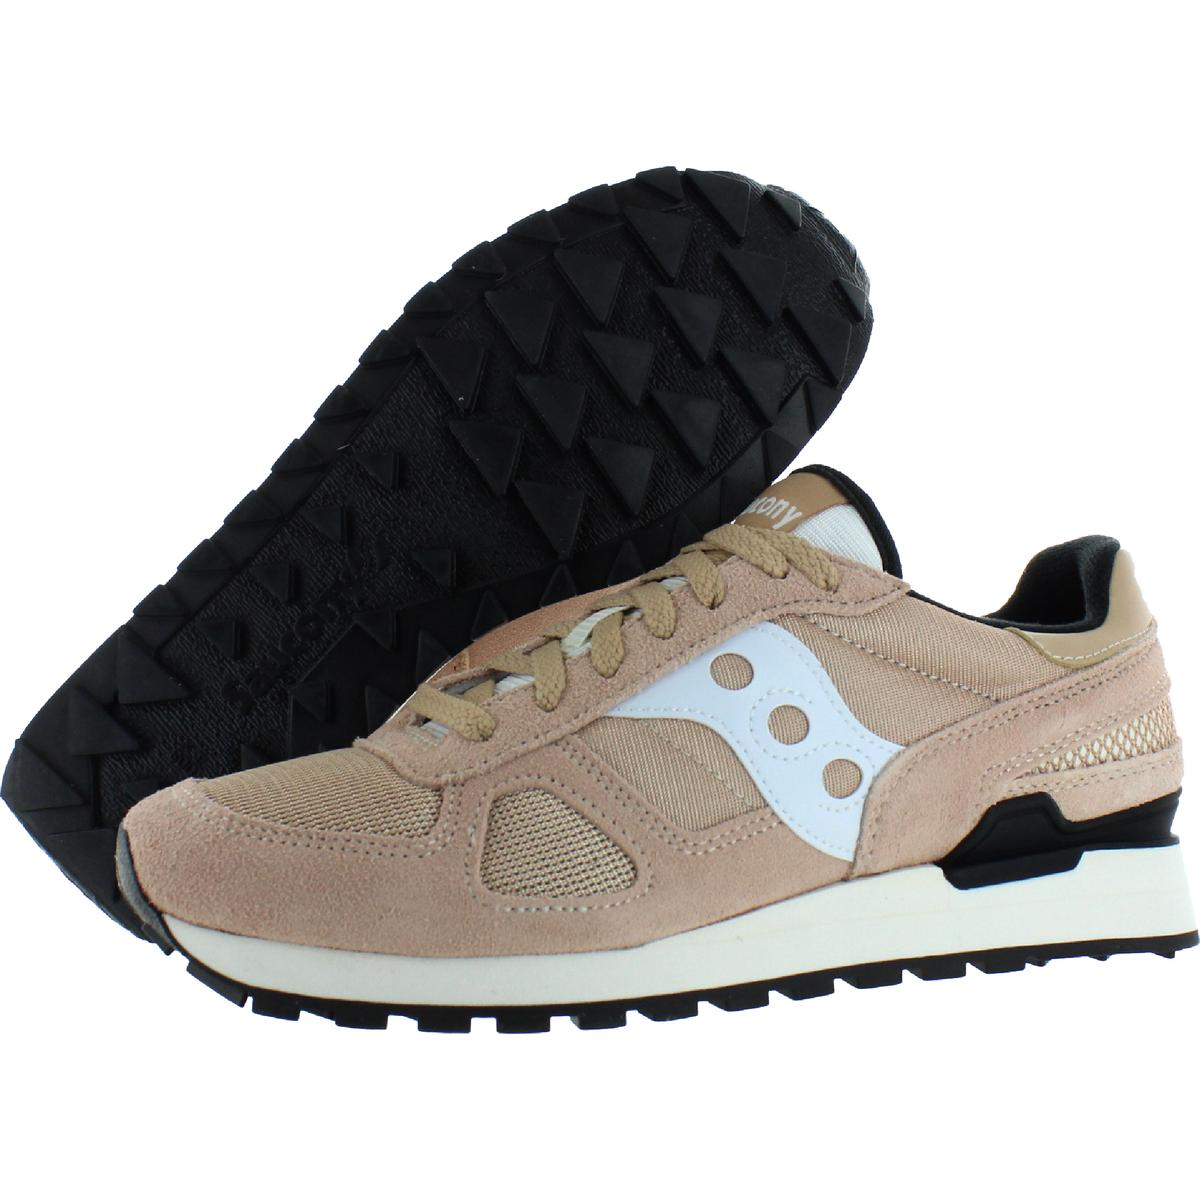 Saucony-Mens-Shadow-Original-Trainers-Suede-Comfort-Sneakers-Shoes-BHFO-0431 miniatuur 33